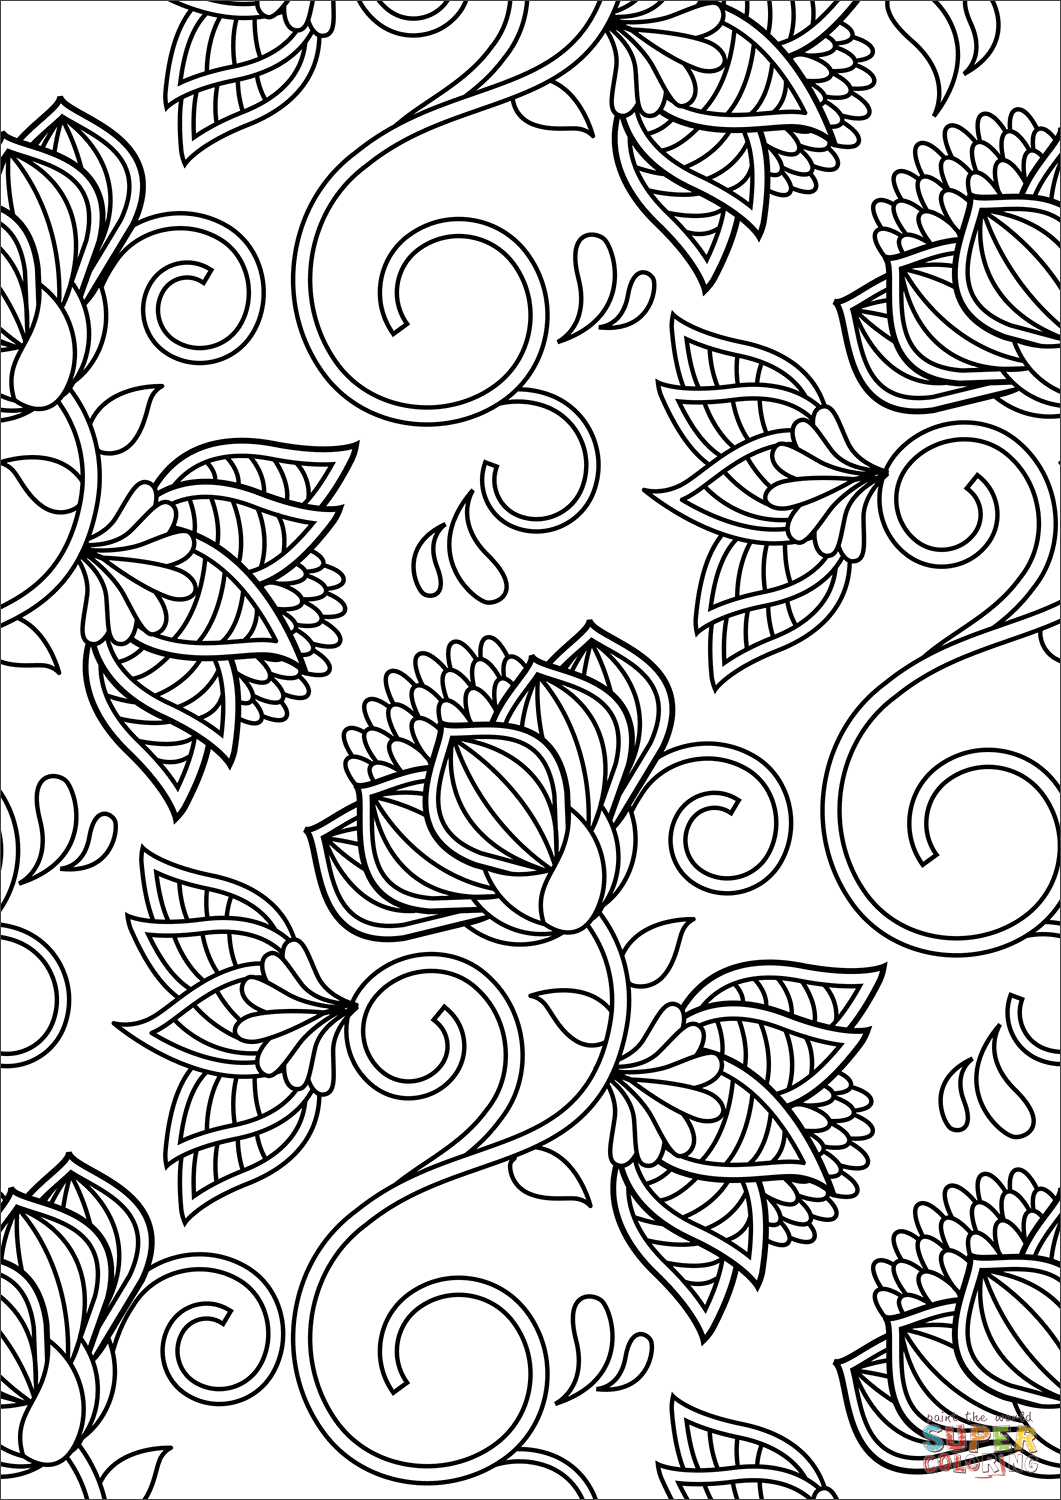 coloring patterns pattern coloring pages best coloring pages for kids patterns coloring